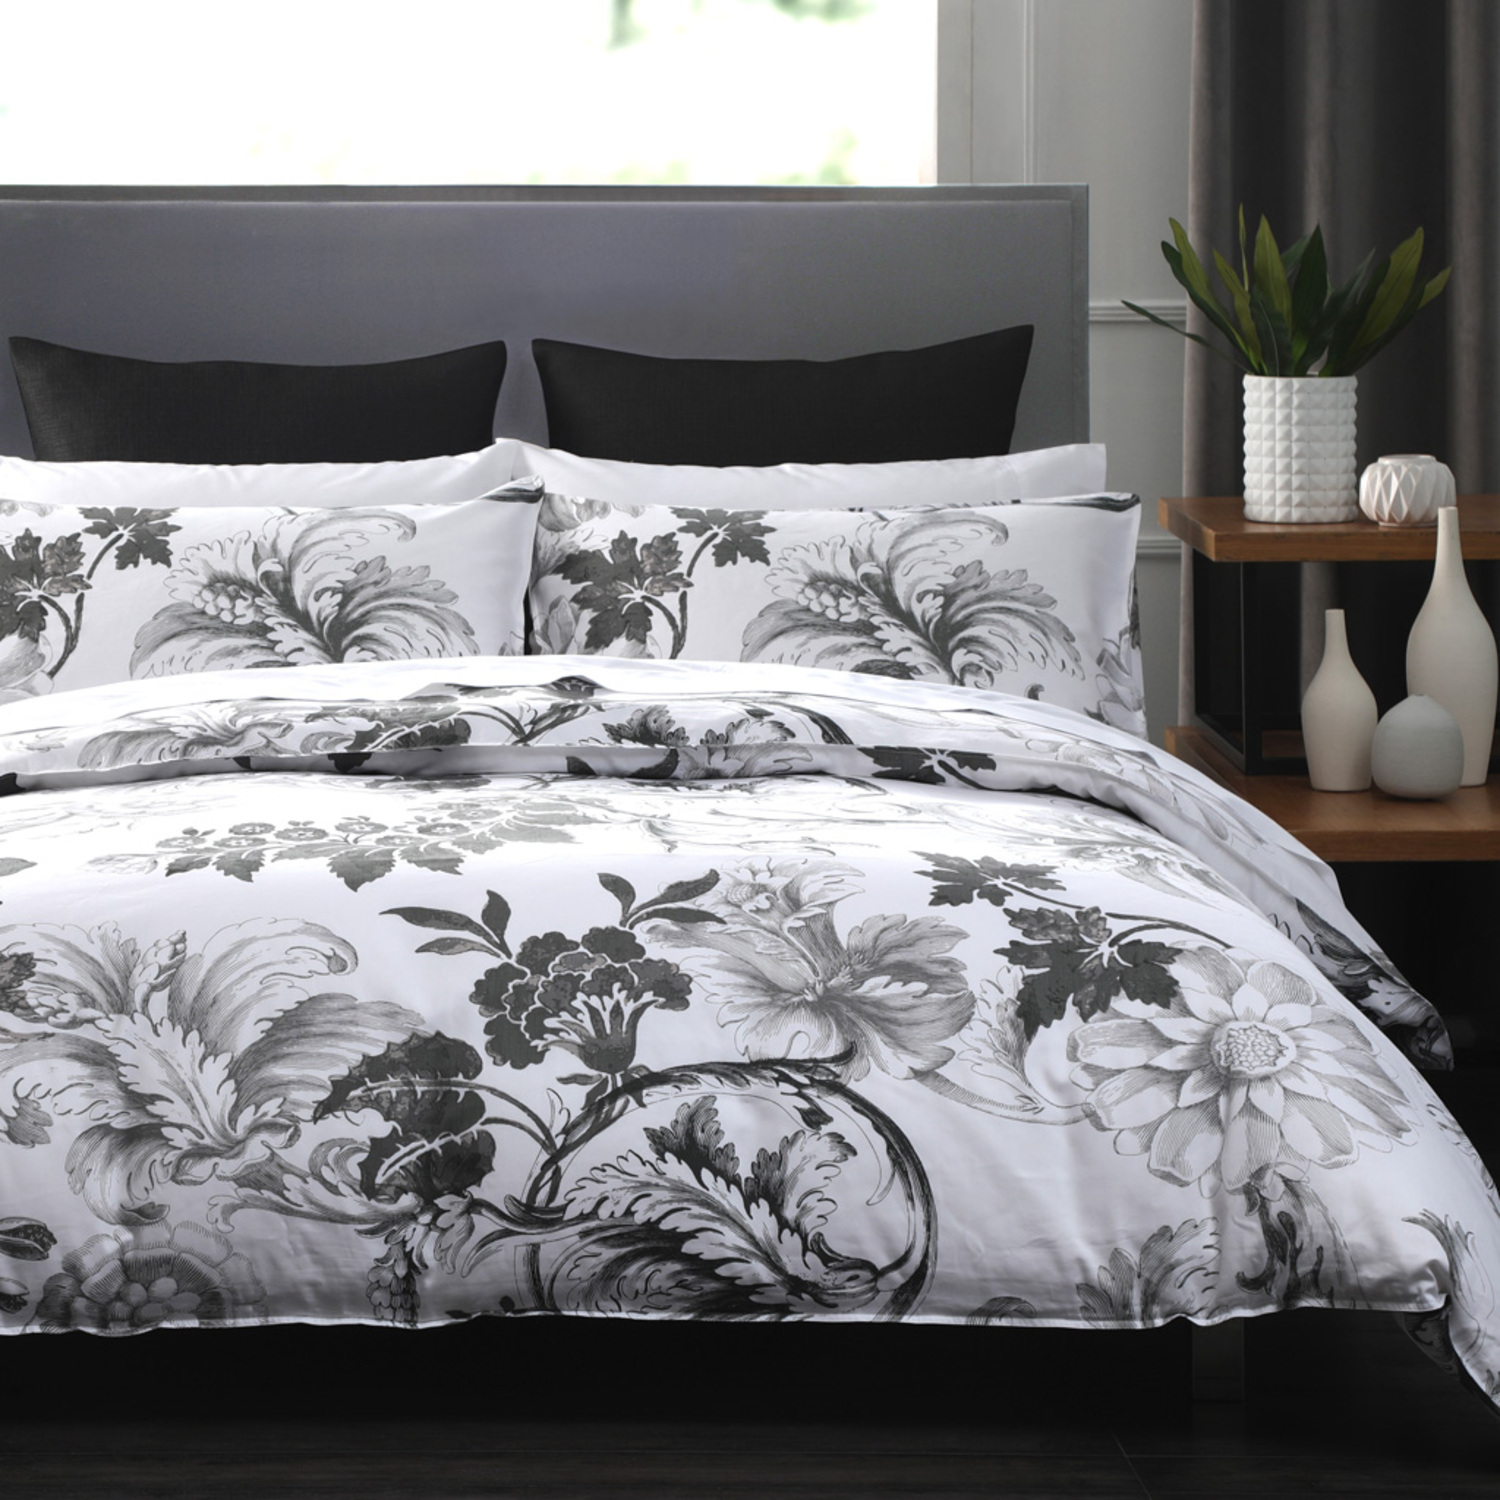 Davinci Grey by Daniadown Bedding